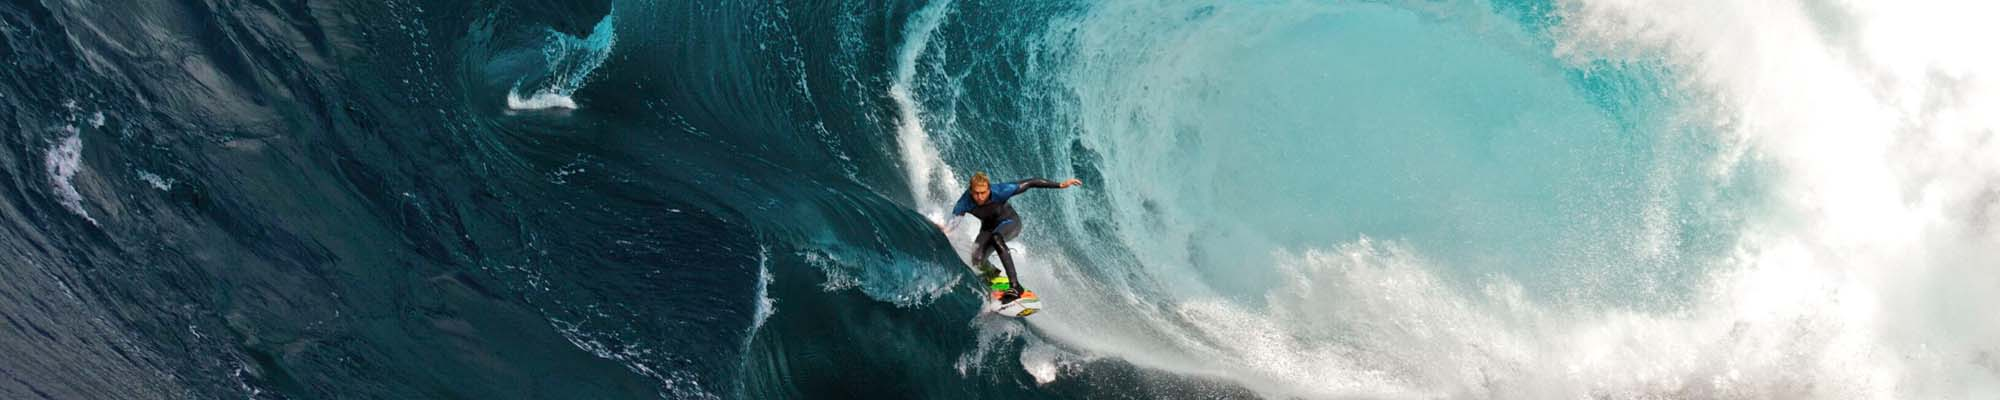 Venture capital, just like catching the perfect wave